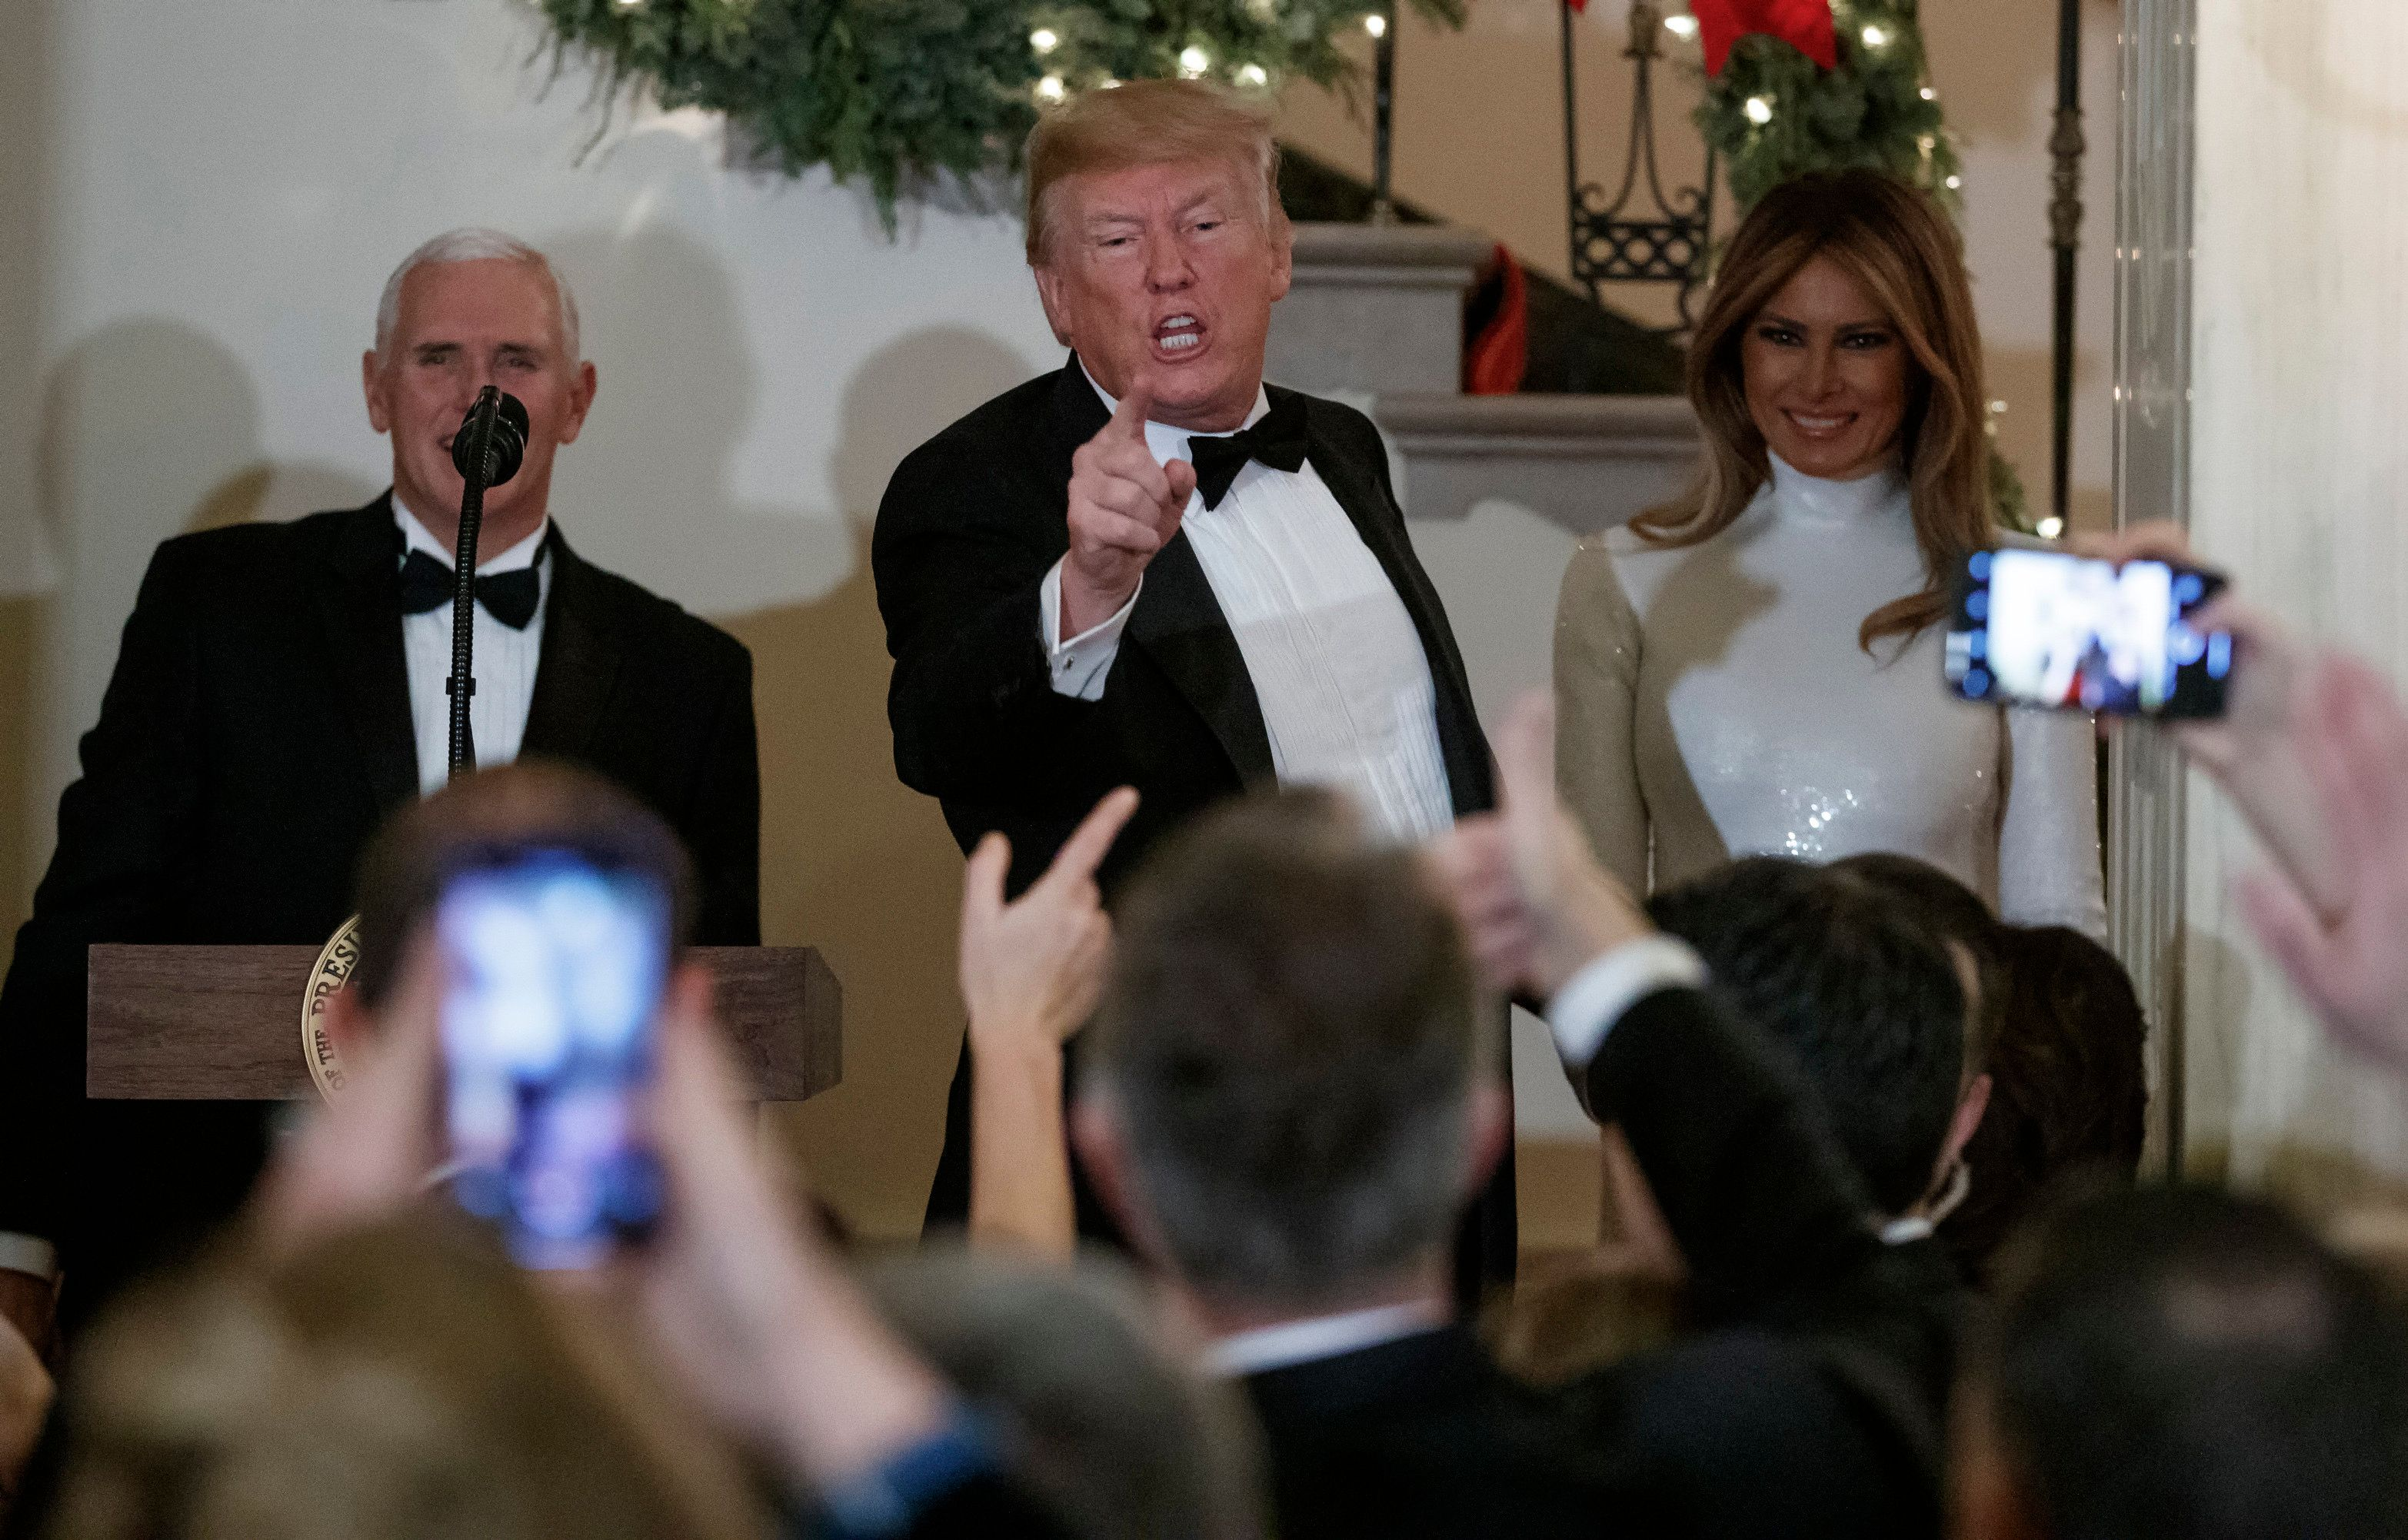 President Donald Trump, joined by Vice President Mike Pence, left, and first lady Melania Trump, right, acknowledges the crowd during the Congressional Ball in the Grand Foyer of the White House in Washington, Saturday, Dec. 15, 2018. (AP Photo/Carolyn Kaster)